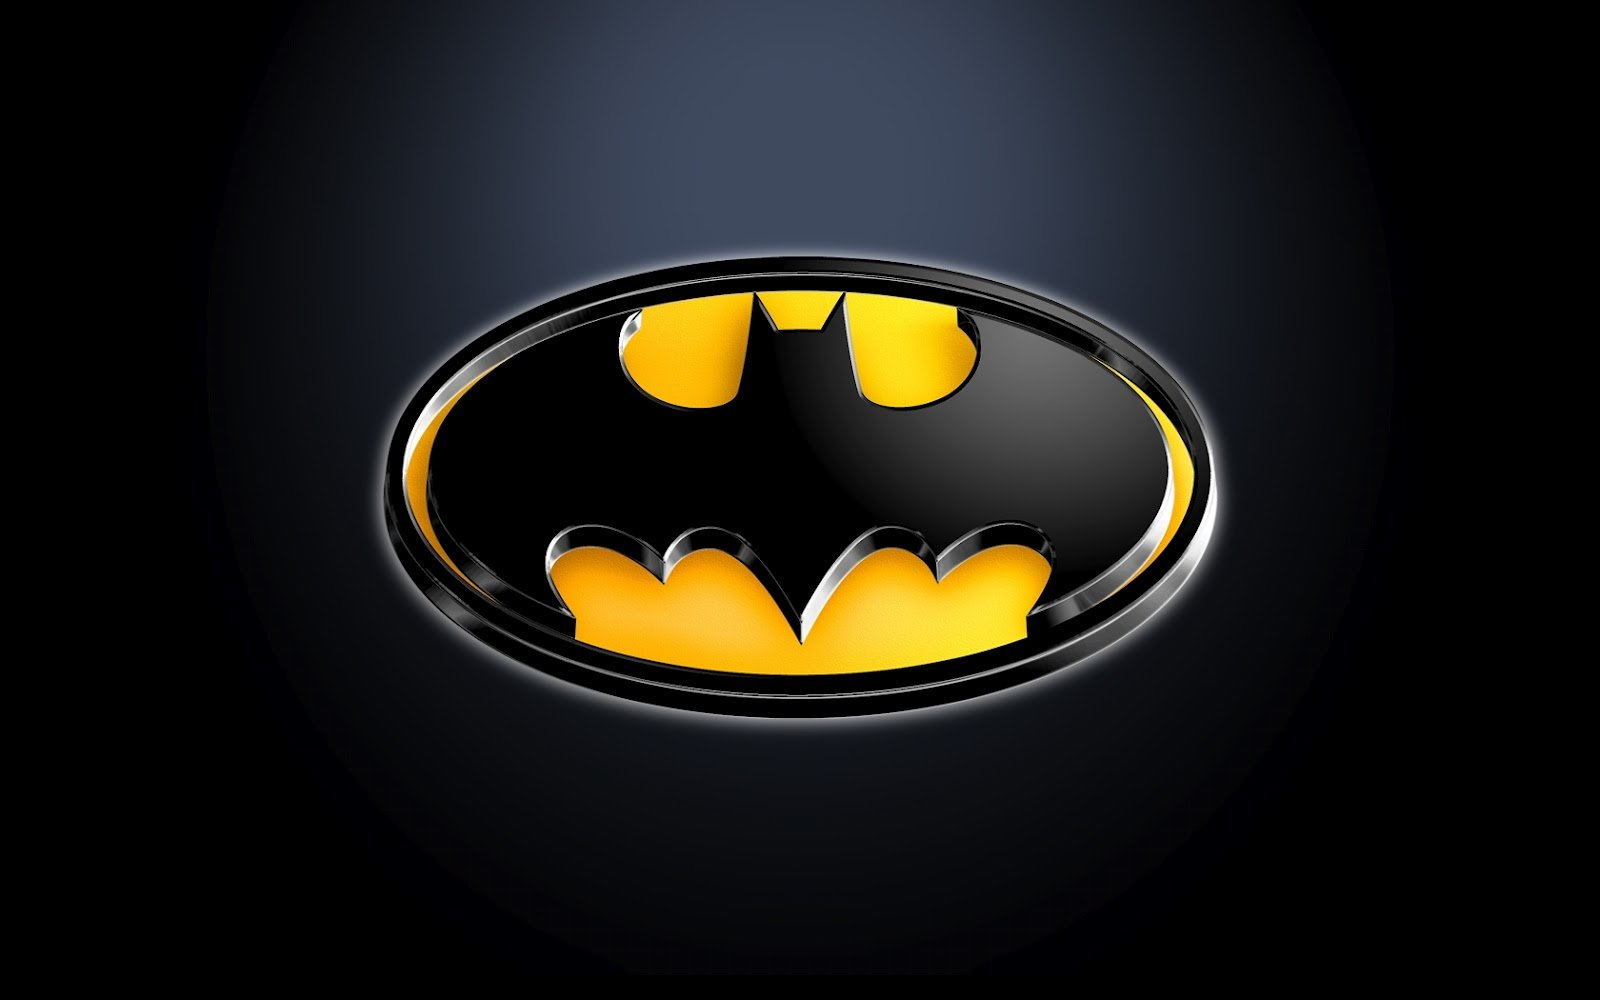 batman logo wallpaper hd wallpapersafari hd logos of pakistani institutions hd logos of pakistani institutions